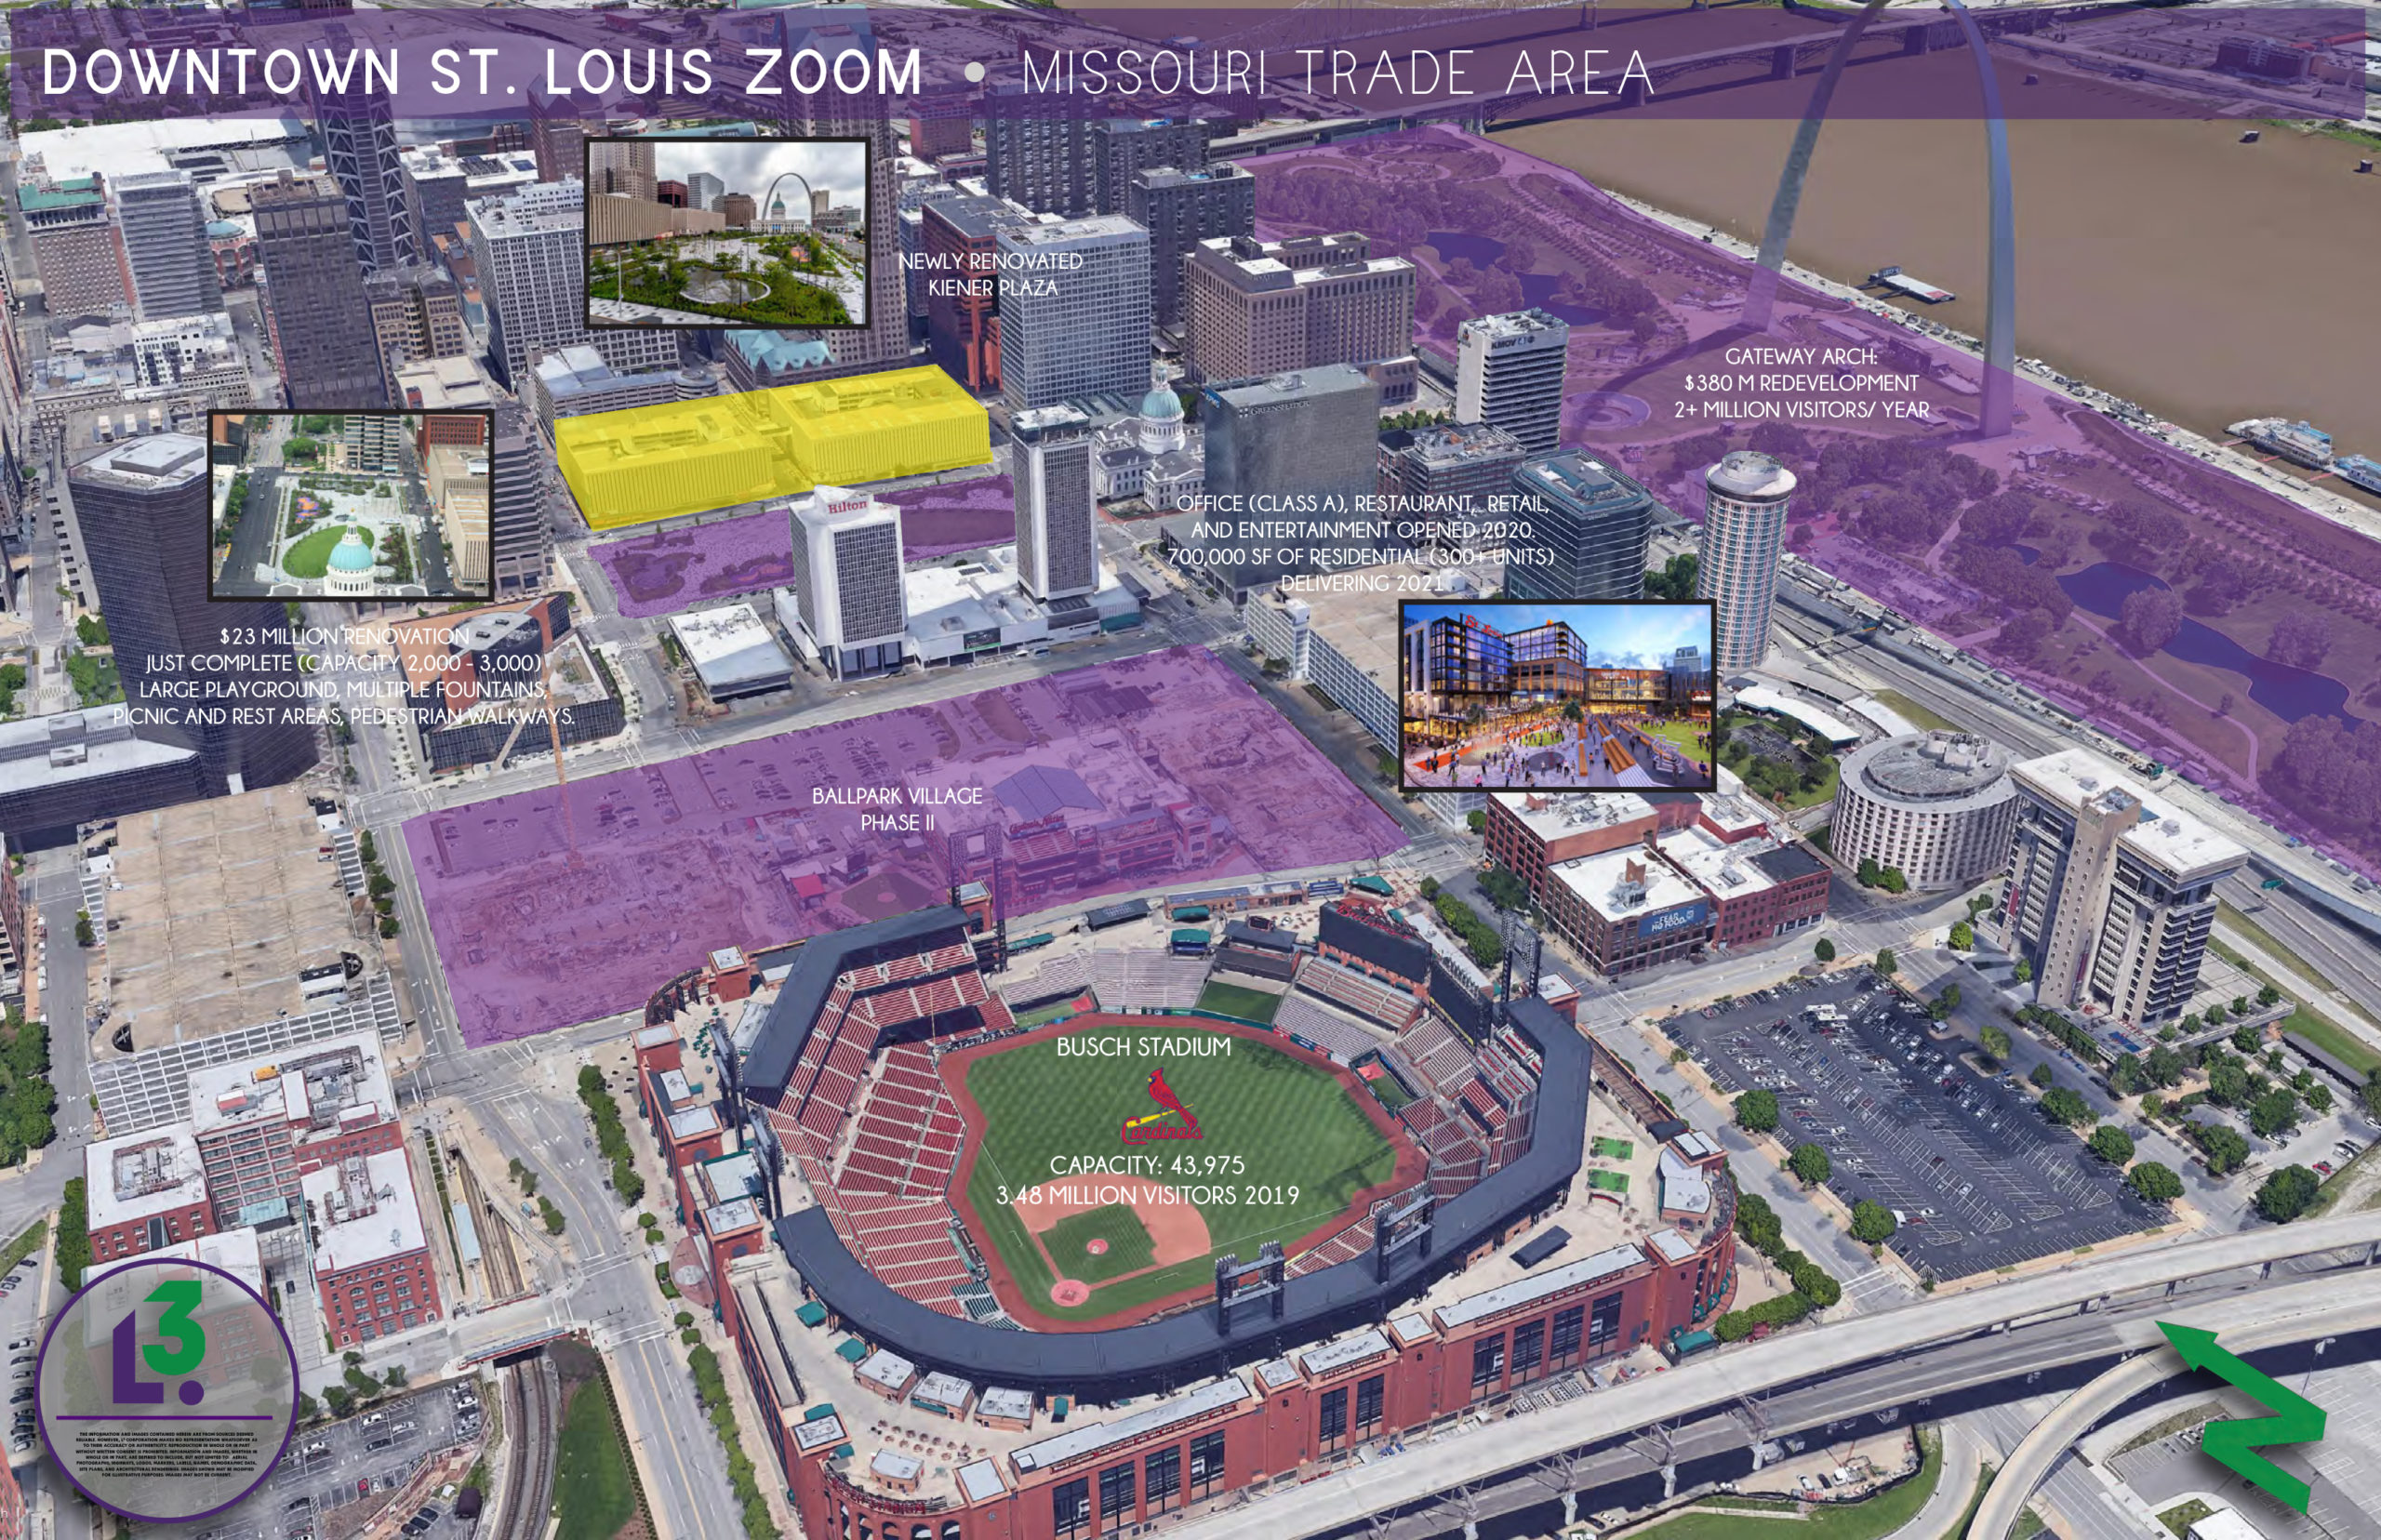 DOWNTOWN ST. LOUIS ZOOM AERIAL